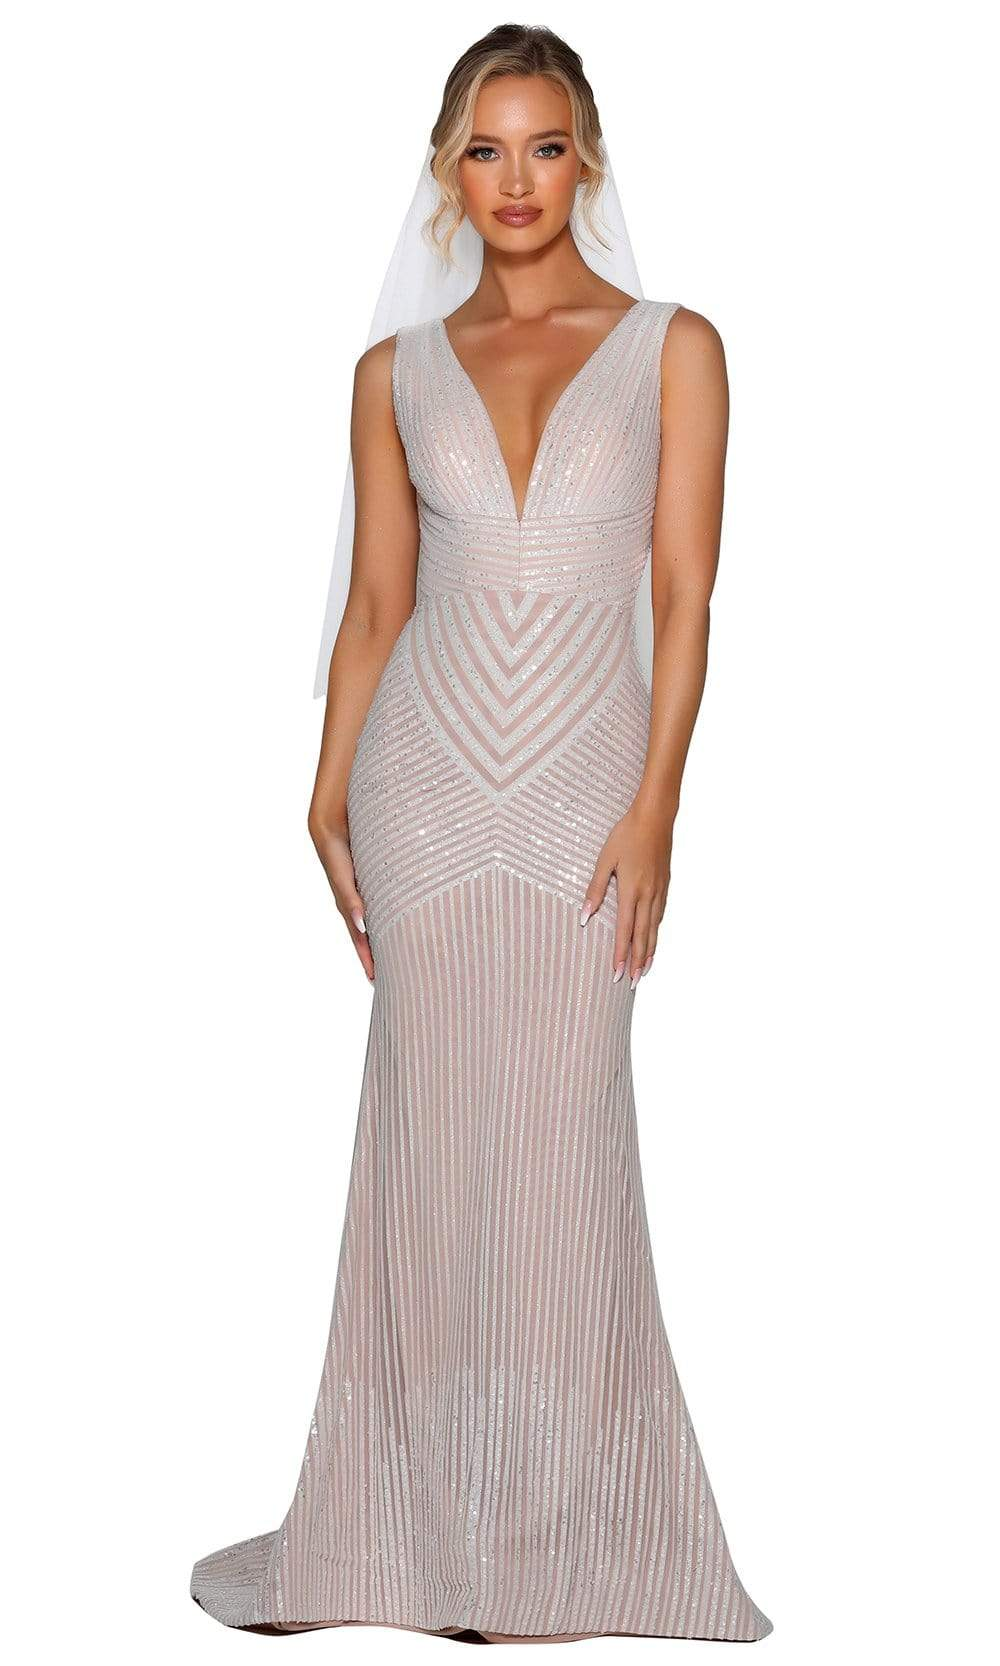 Portia and Scarlett - PSB6808 V Neck Sequined Trumpet Gown from Portia and Scarlett